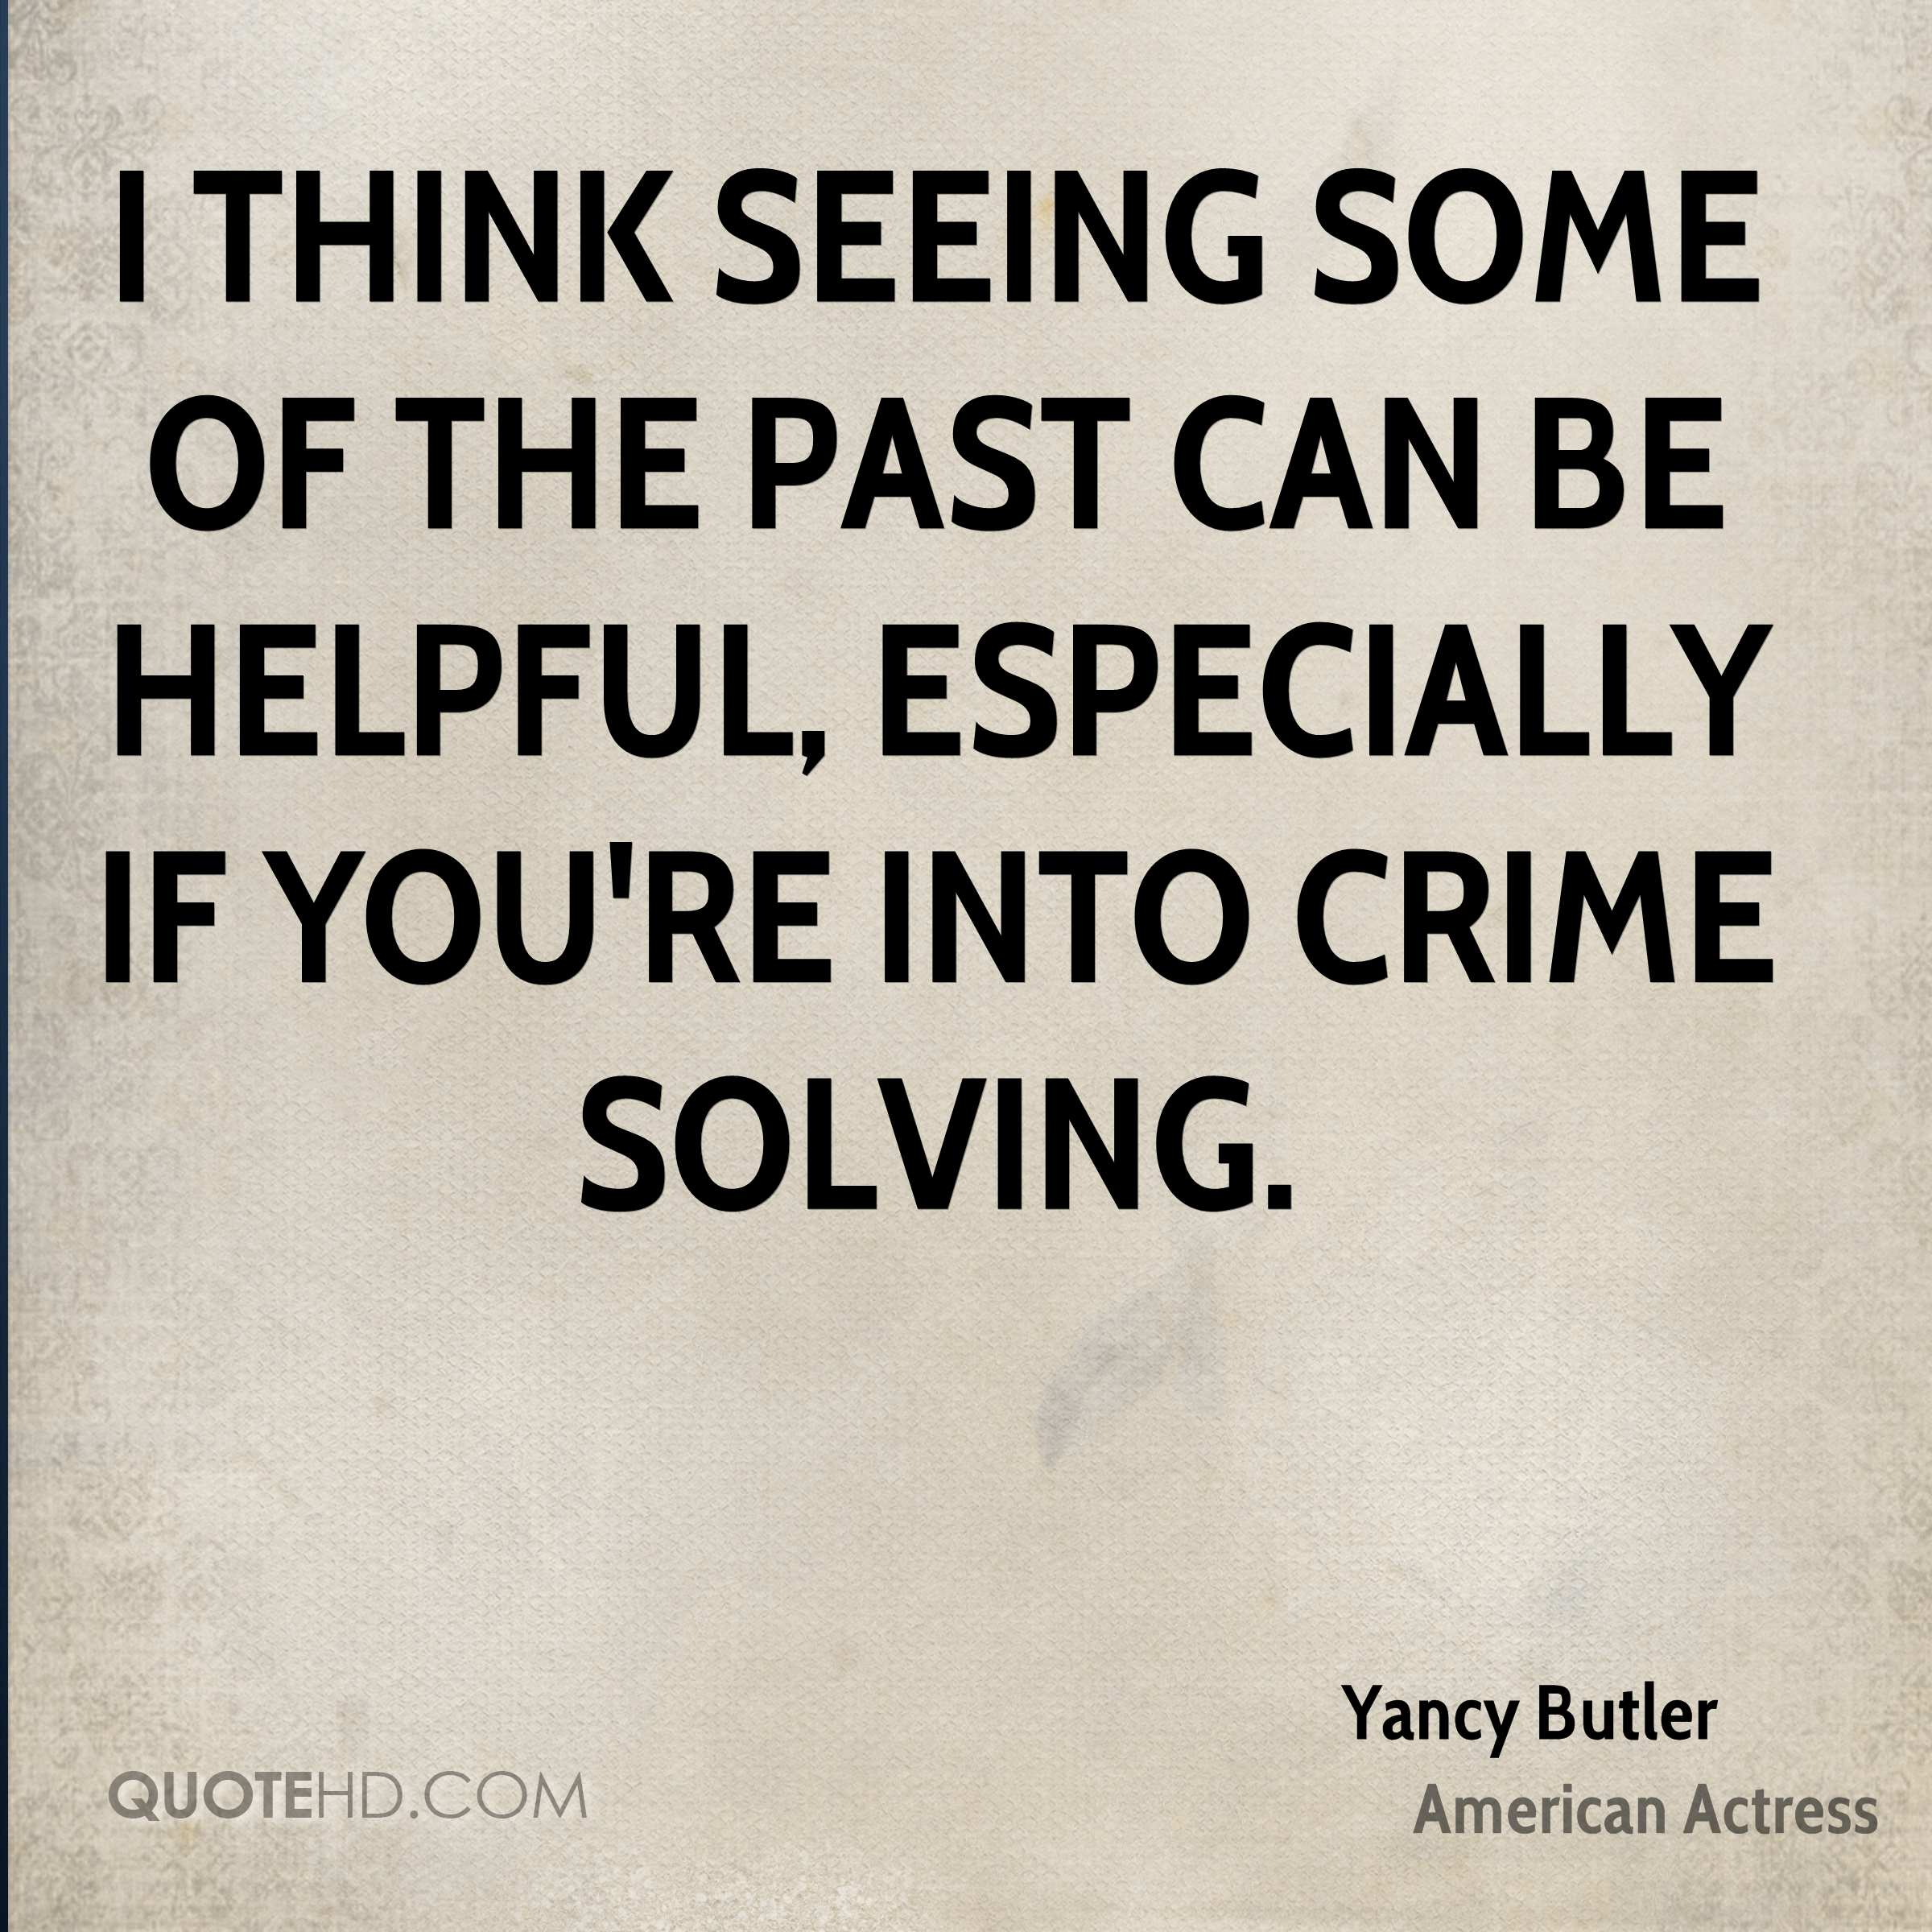 I think seeing some of the past can be helpful, especially if you're into crime solving.